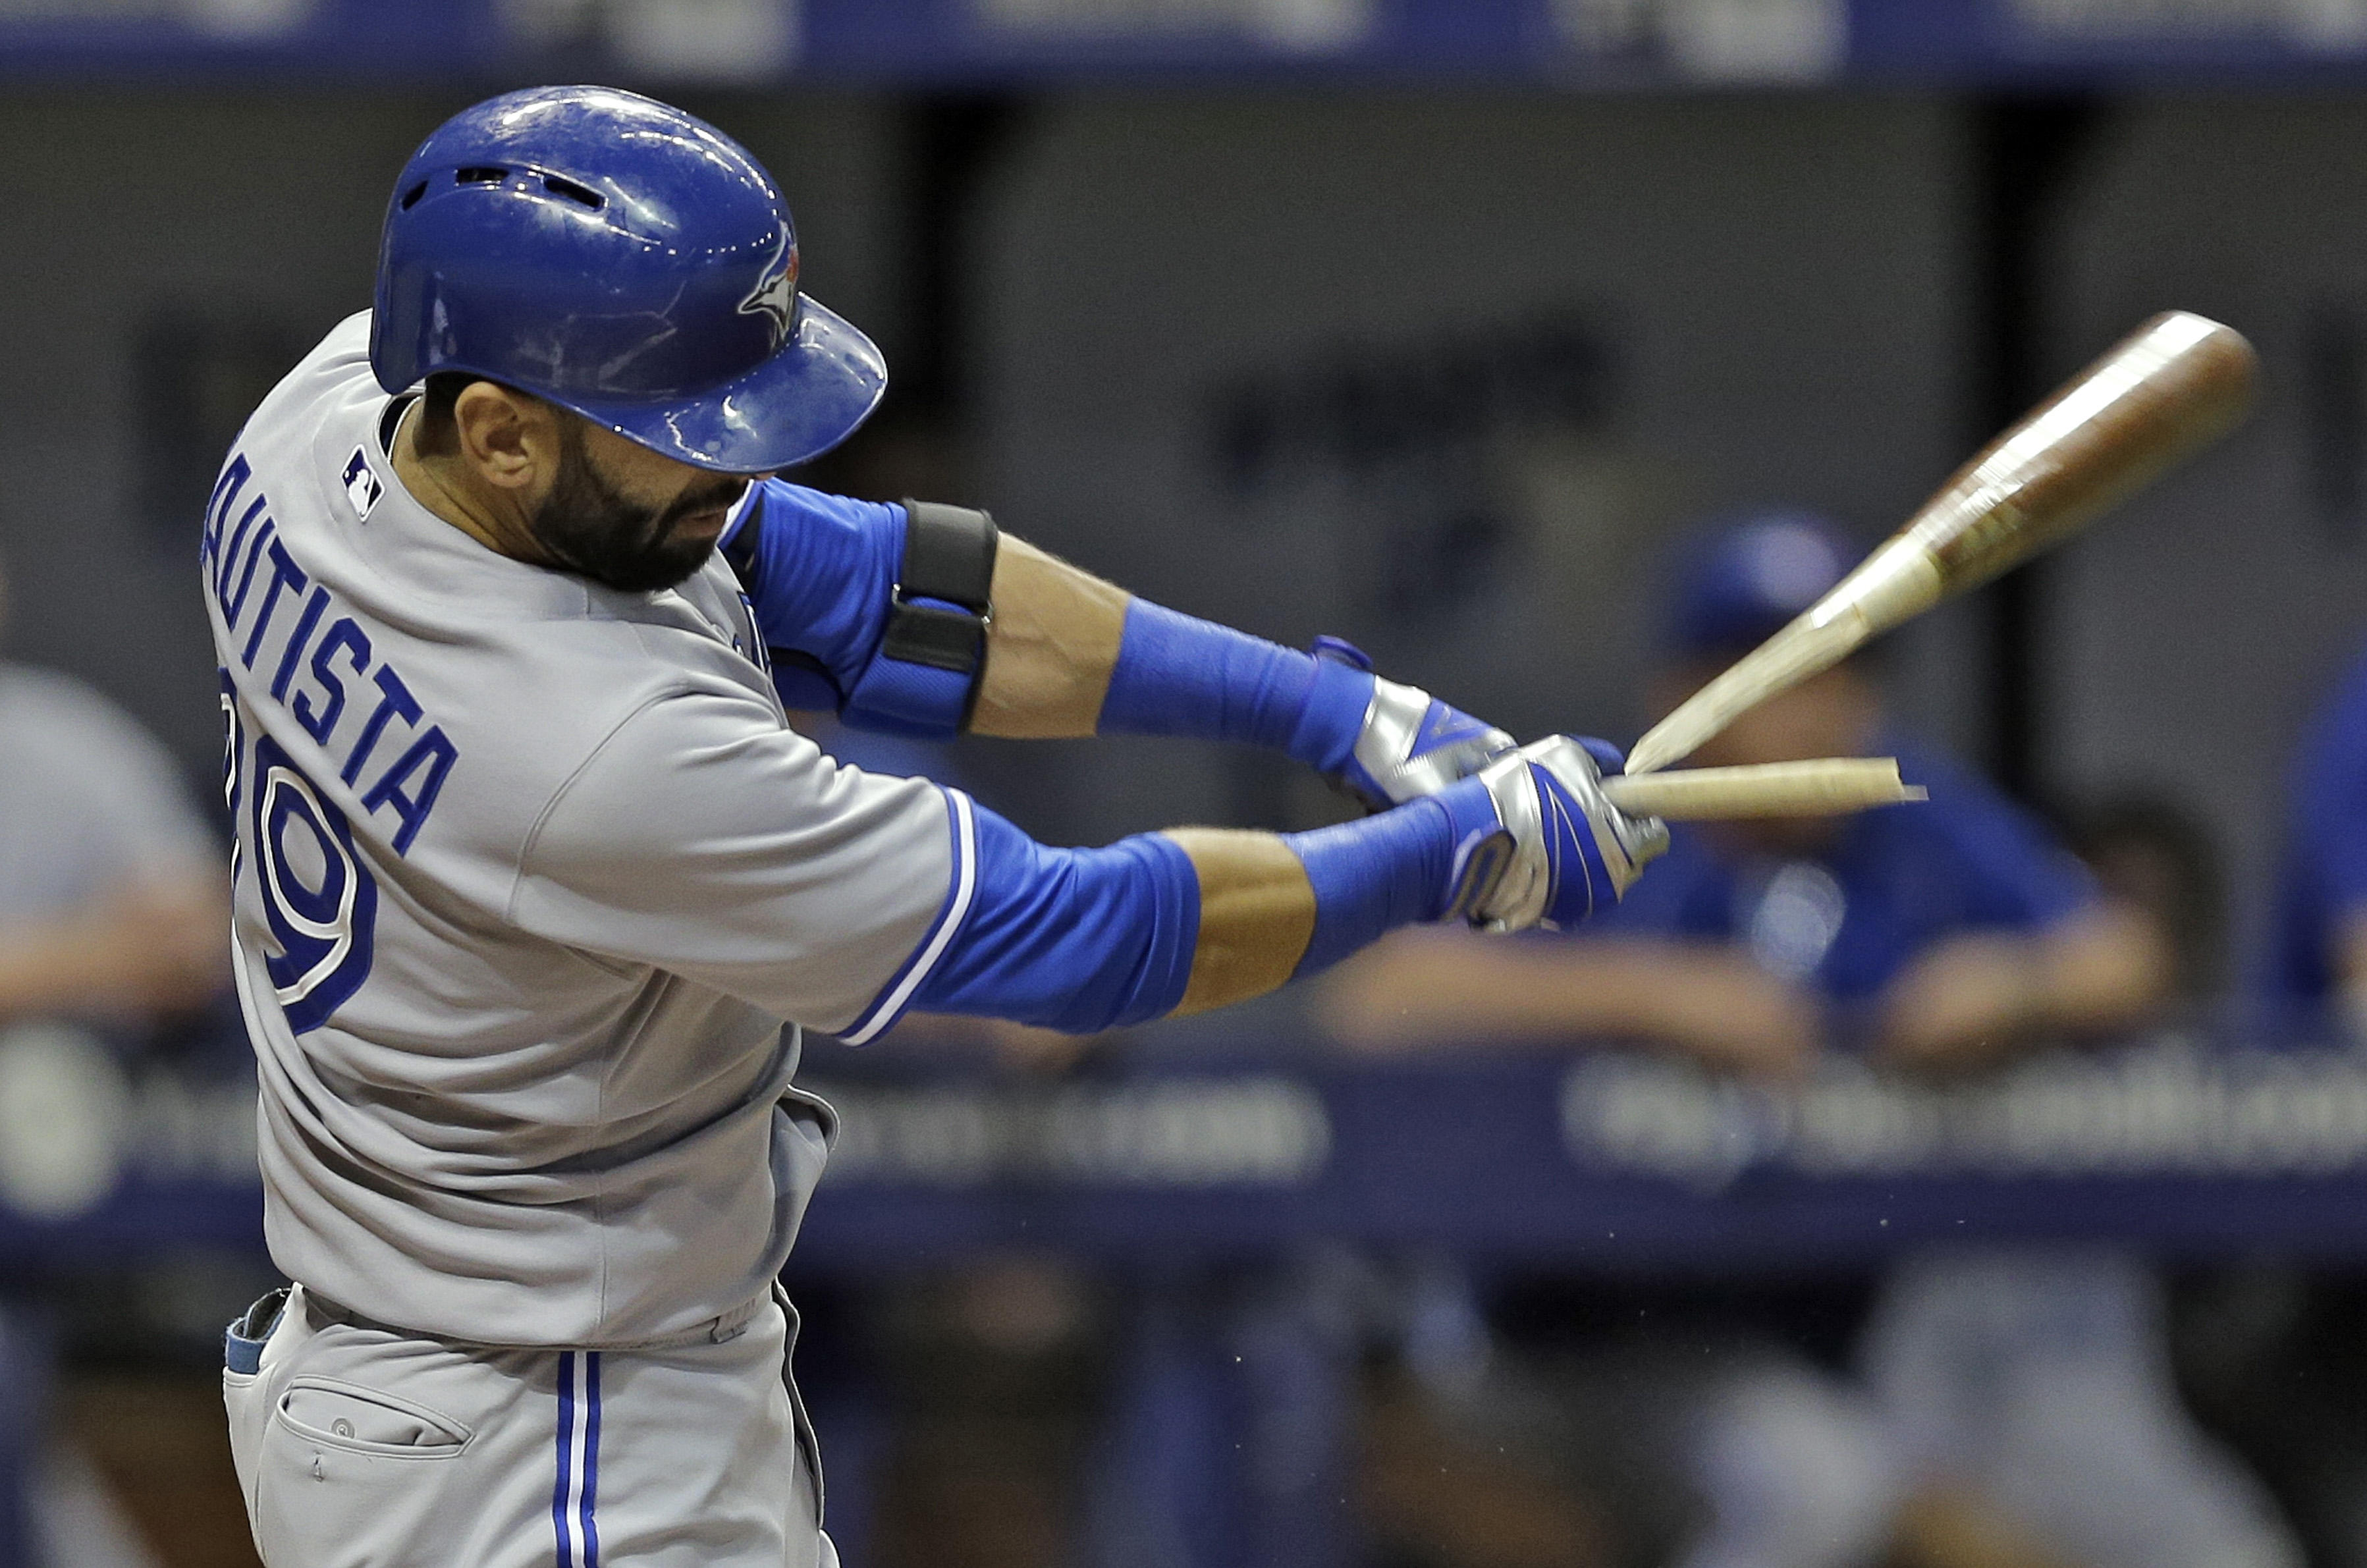 Toronto Blue Jays' Jose Bautista breaks his bat as he pops out to Tampa Bay Rays second baseman Logan Forsythe during the fourth inning of a baseball game Tuesday, June 23, 2015, in St. Petersburg, Fla.  (AP Photo/Chris O'Meara)